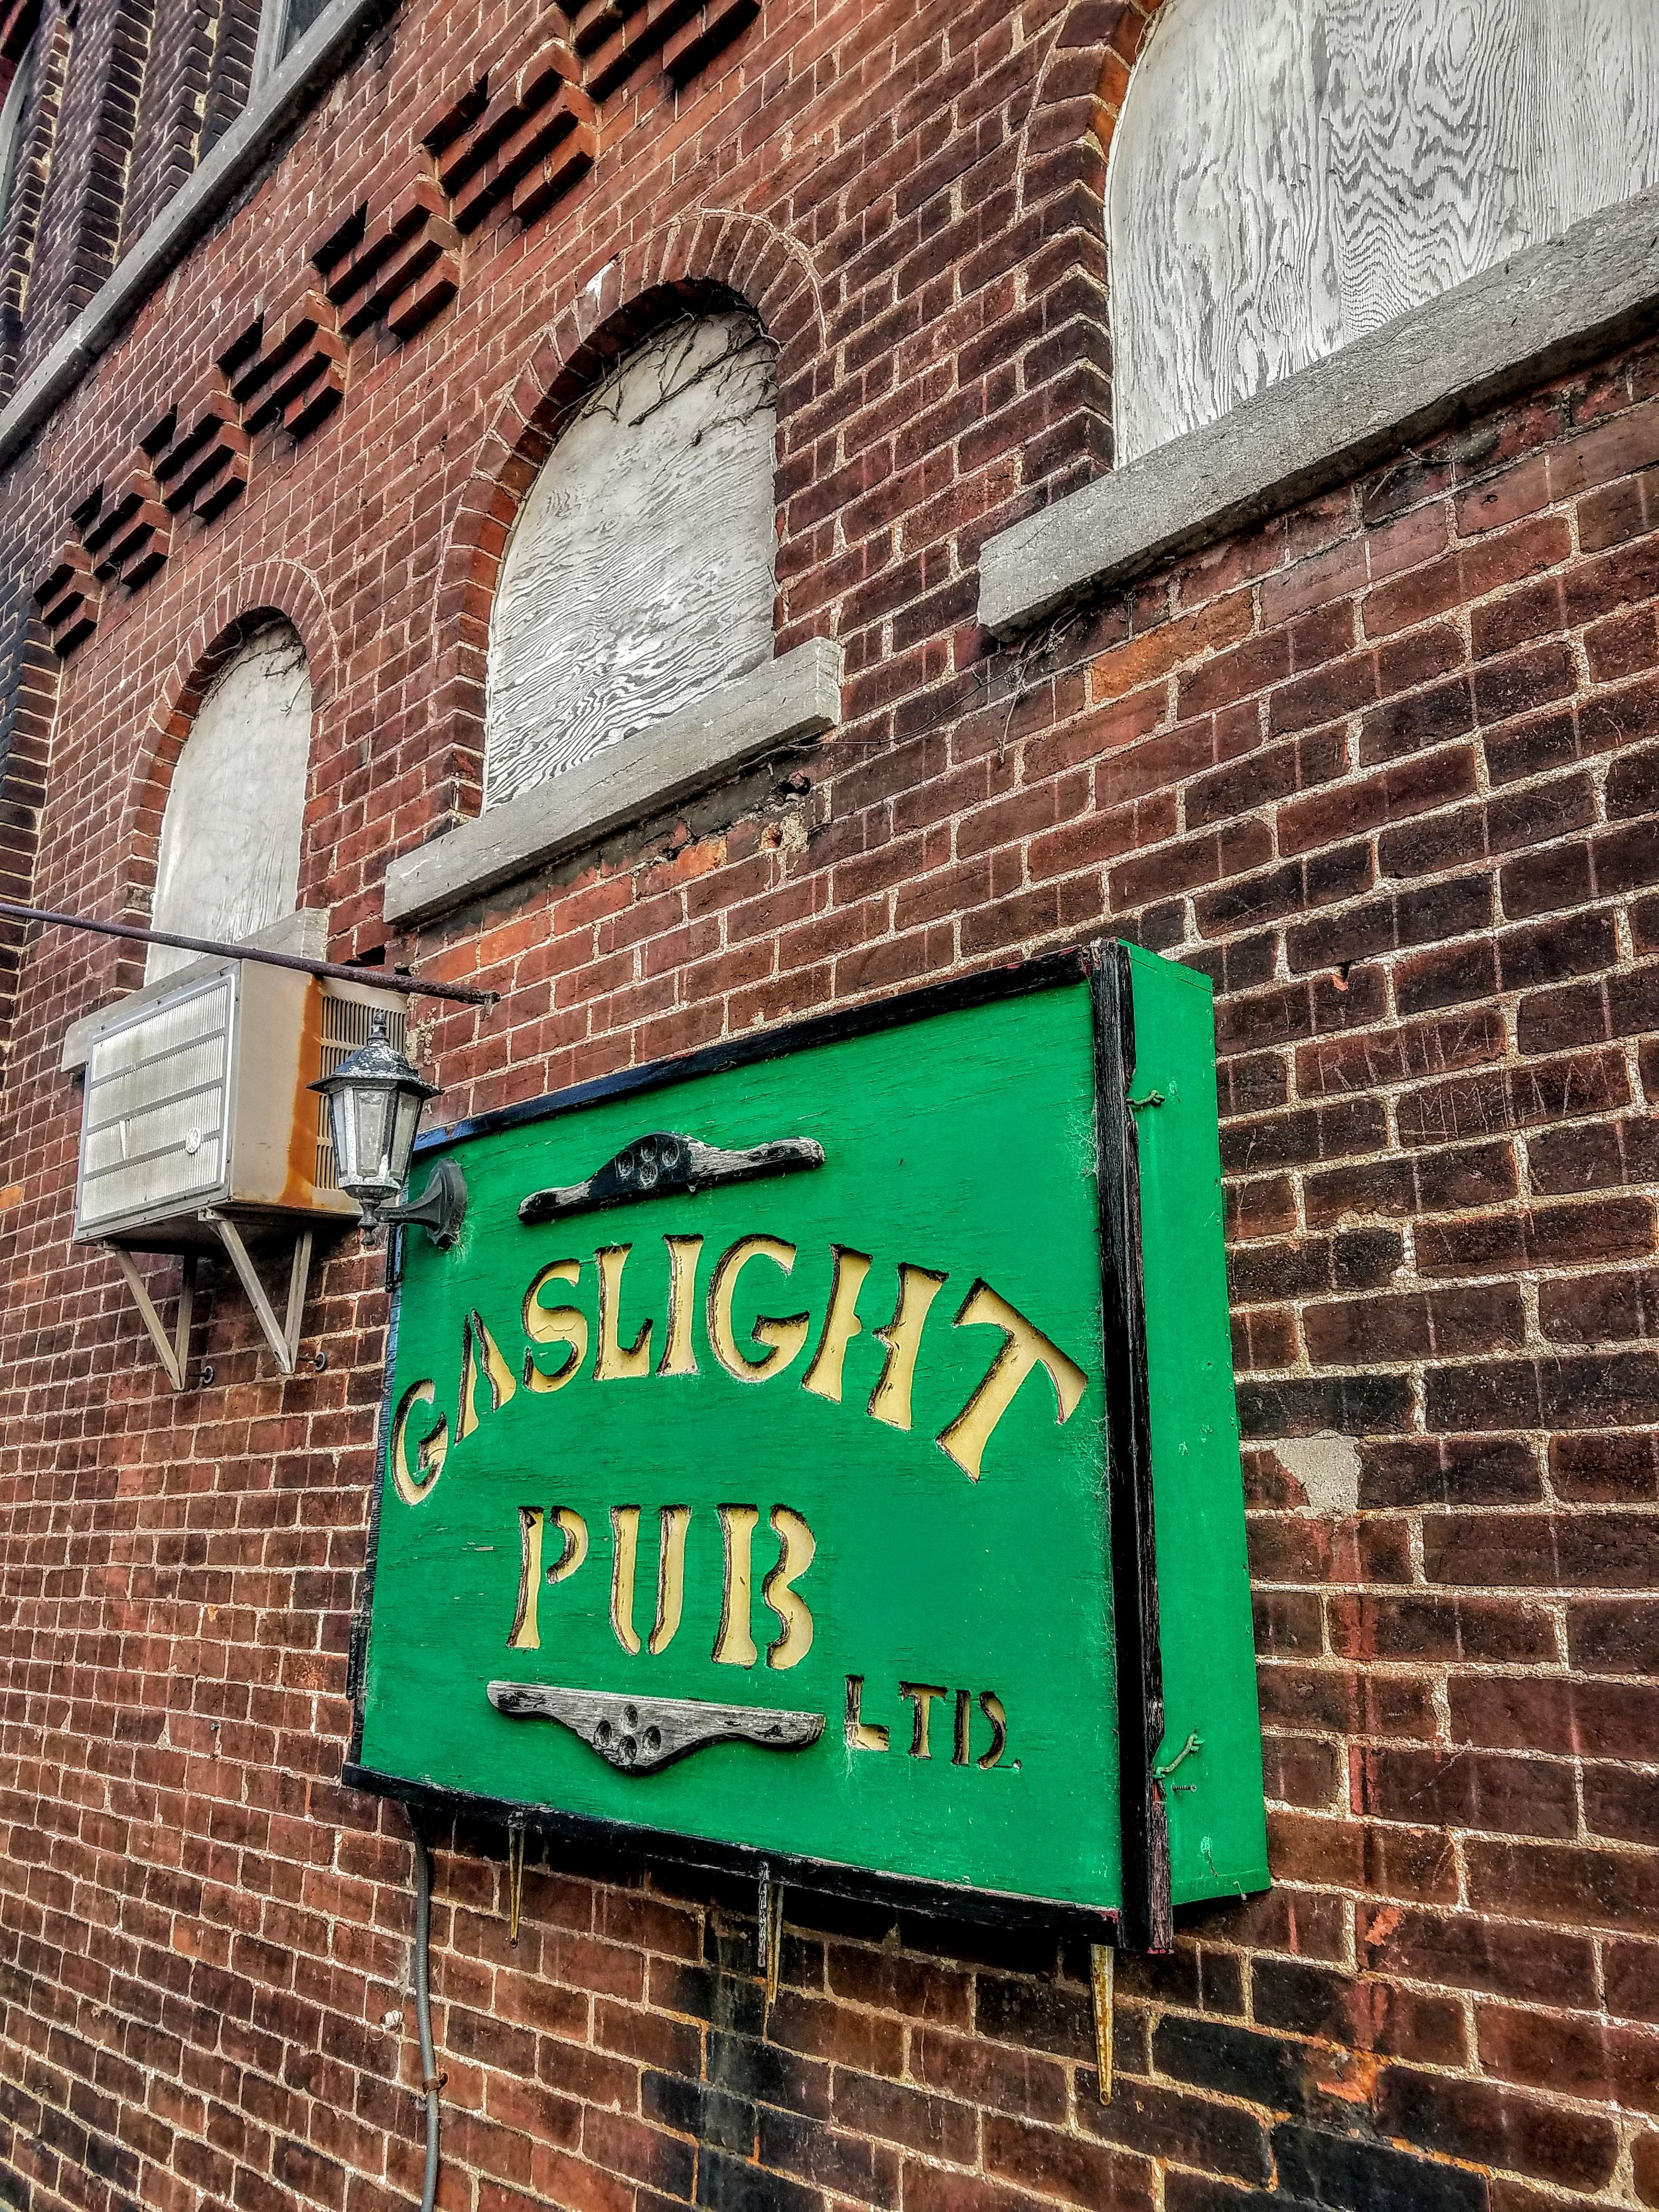 Sad that The Gaslight was closed.  I think this winters high waters got inside